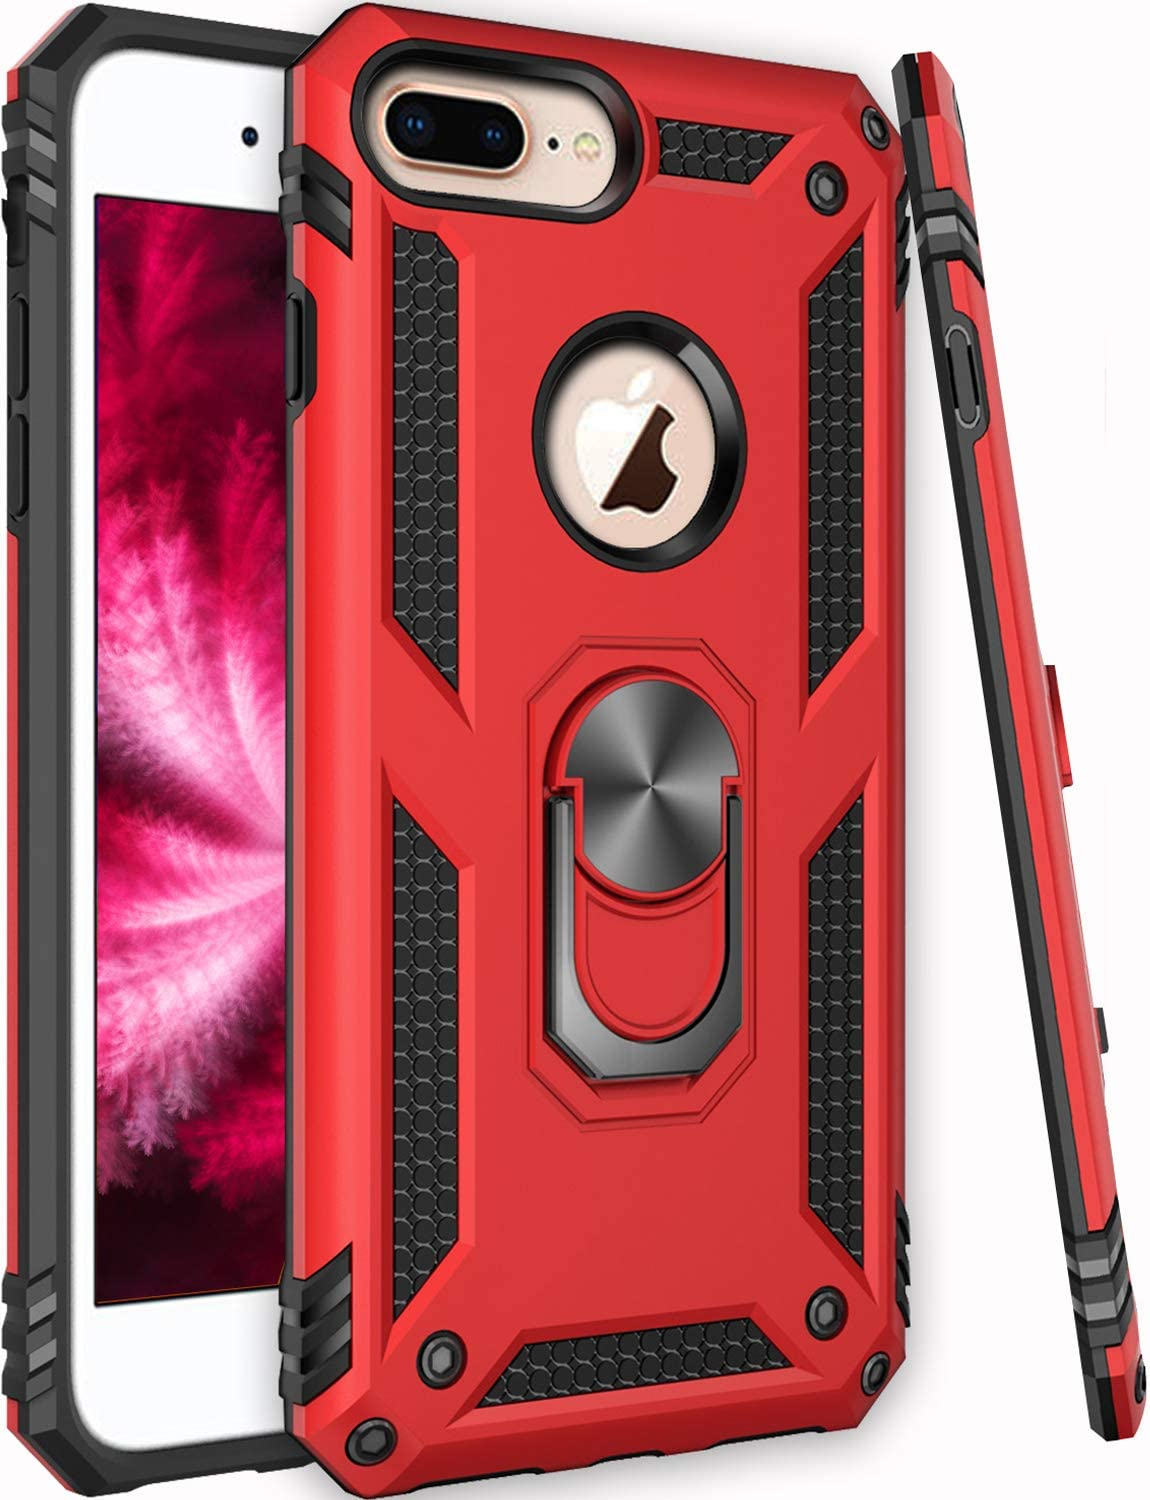 Universal for iPhone 8 Plus Case,iPhone 7 Plus Case,iPhone 6 6s Plus Case,ZADORN 15ft Drop Tested Military Grade Heavy Duty Slim Fit Protective Phone Case for iPhone 6 6S Plus/7 Plus/8 Plus Red